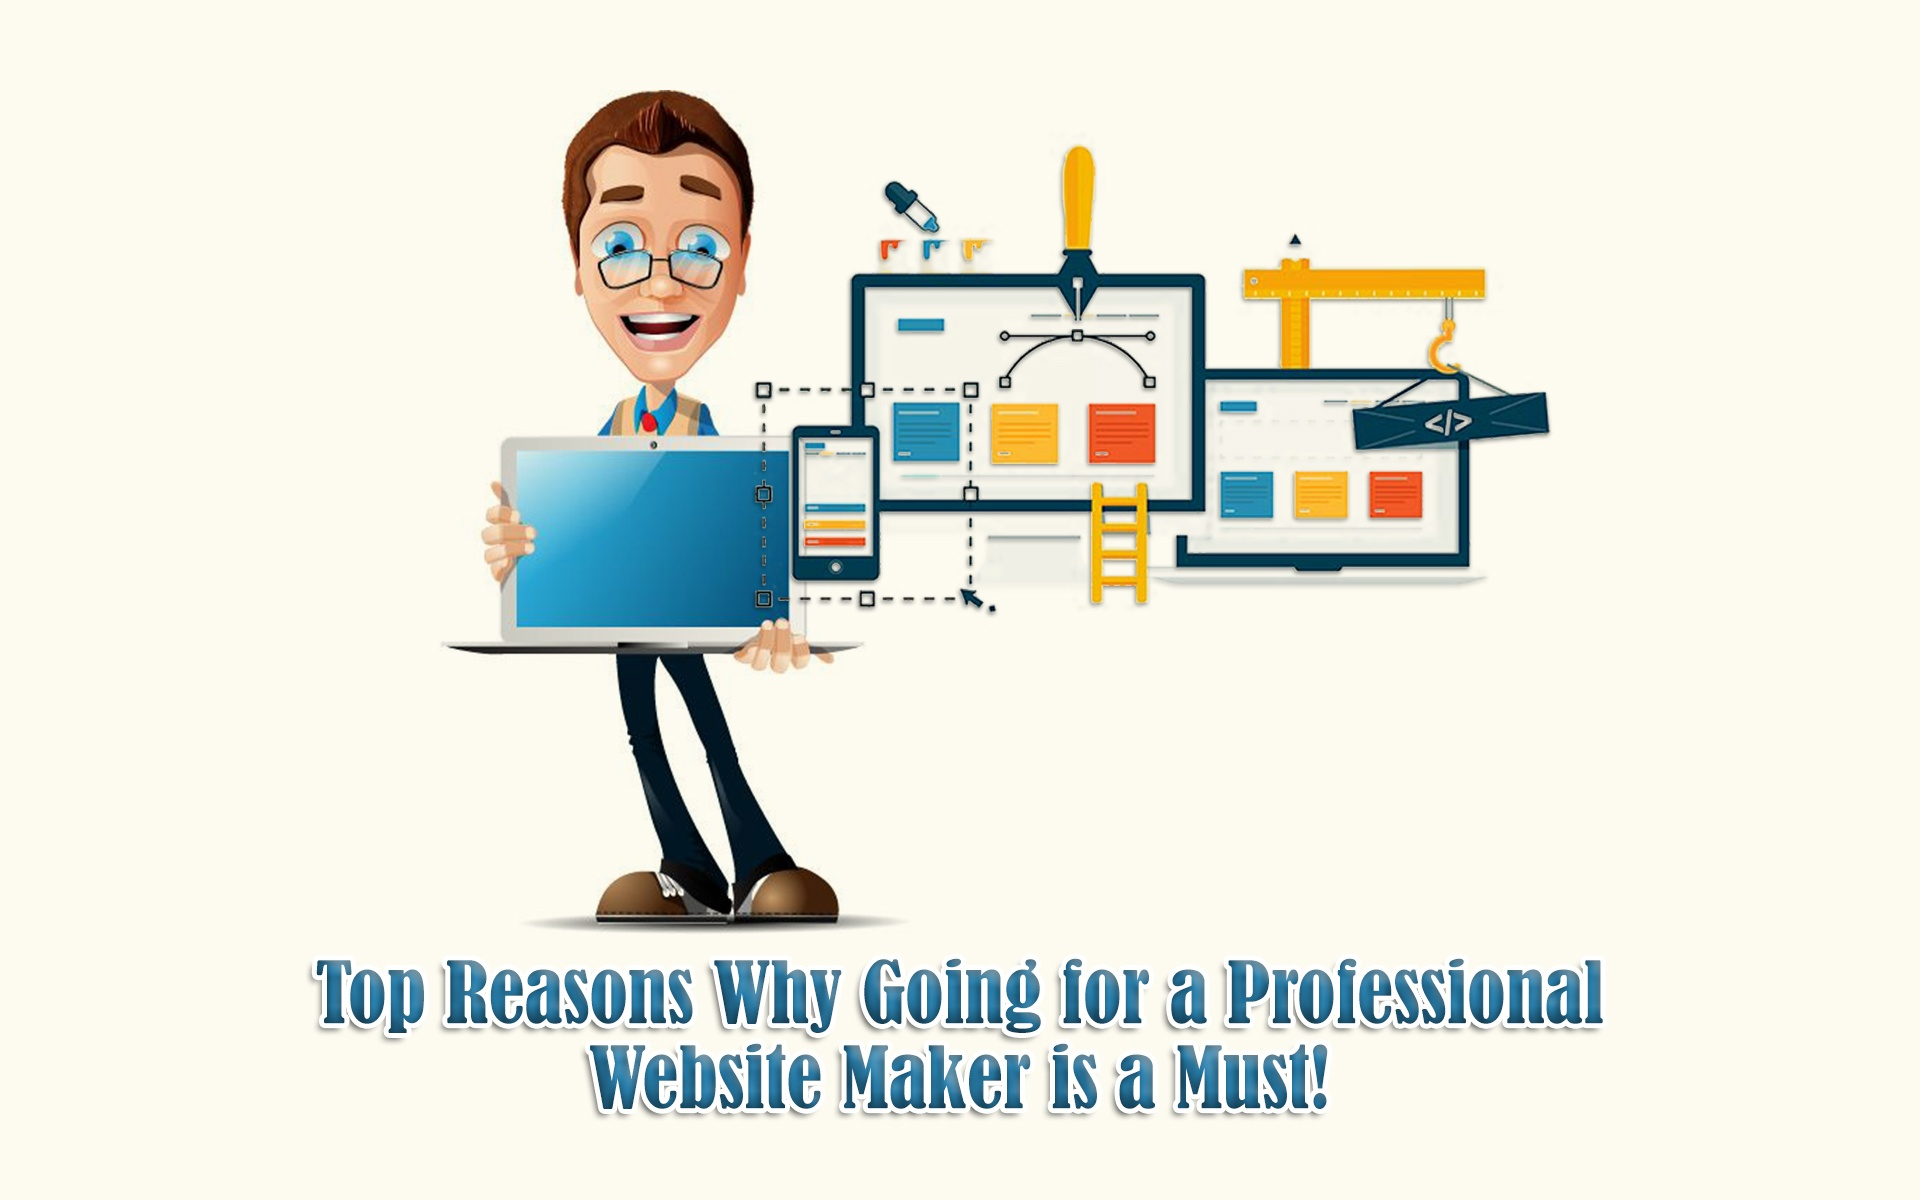 Top Reasons Why Going for a Professional Website Maker is a Must!